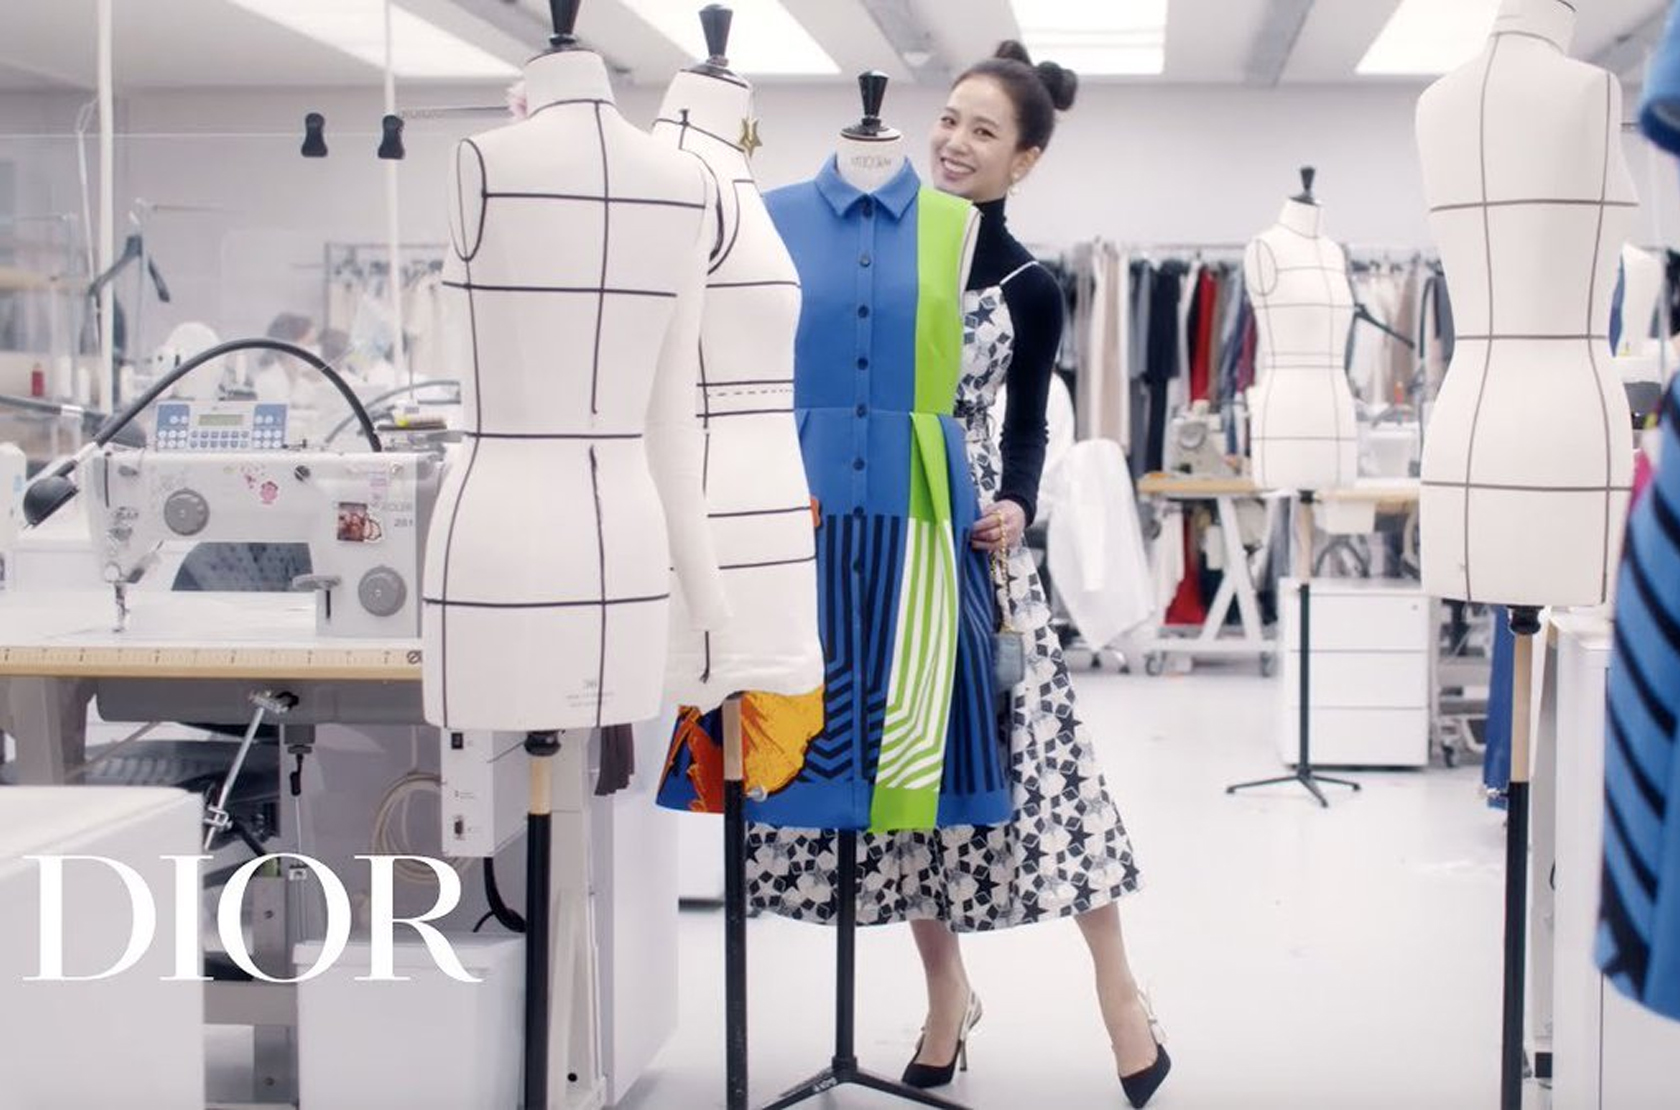 WATCH JISOO IN THIS NEW VIDEO AS SHE EXPLORES DIOR